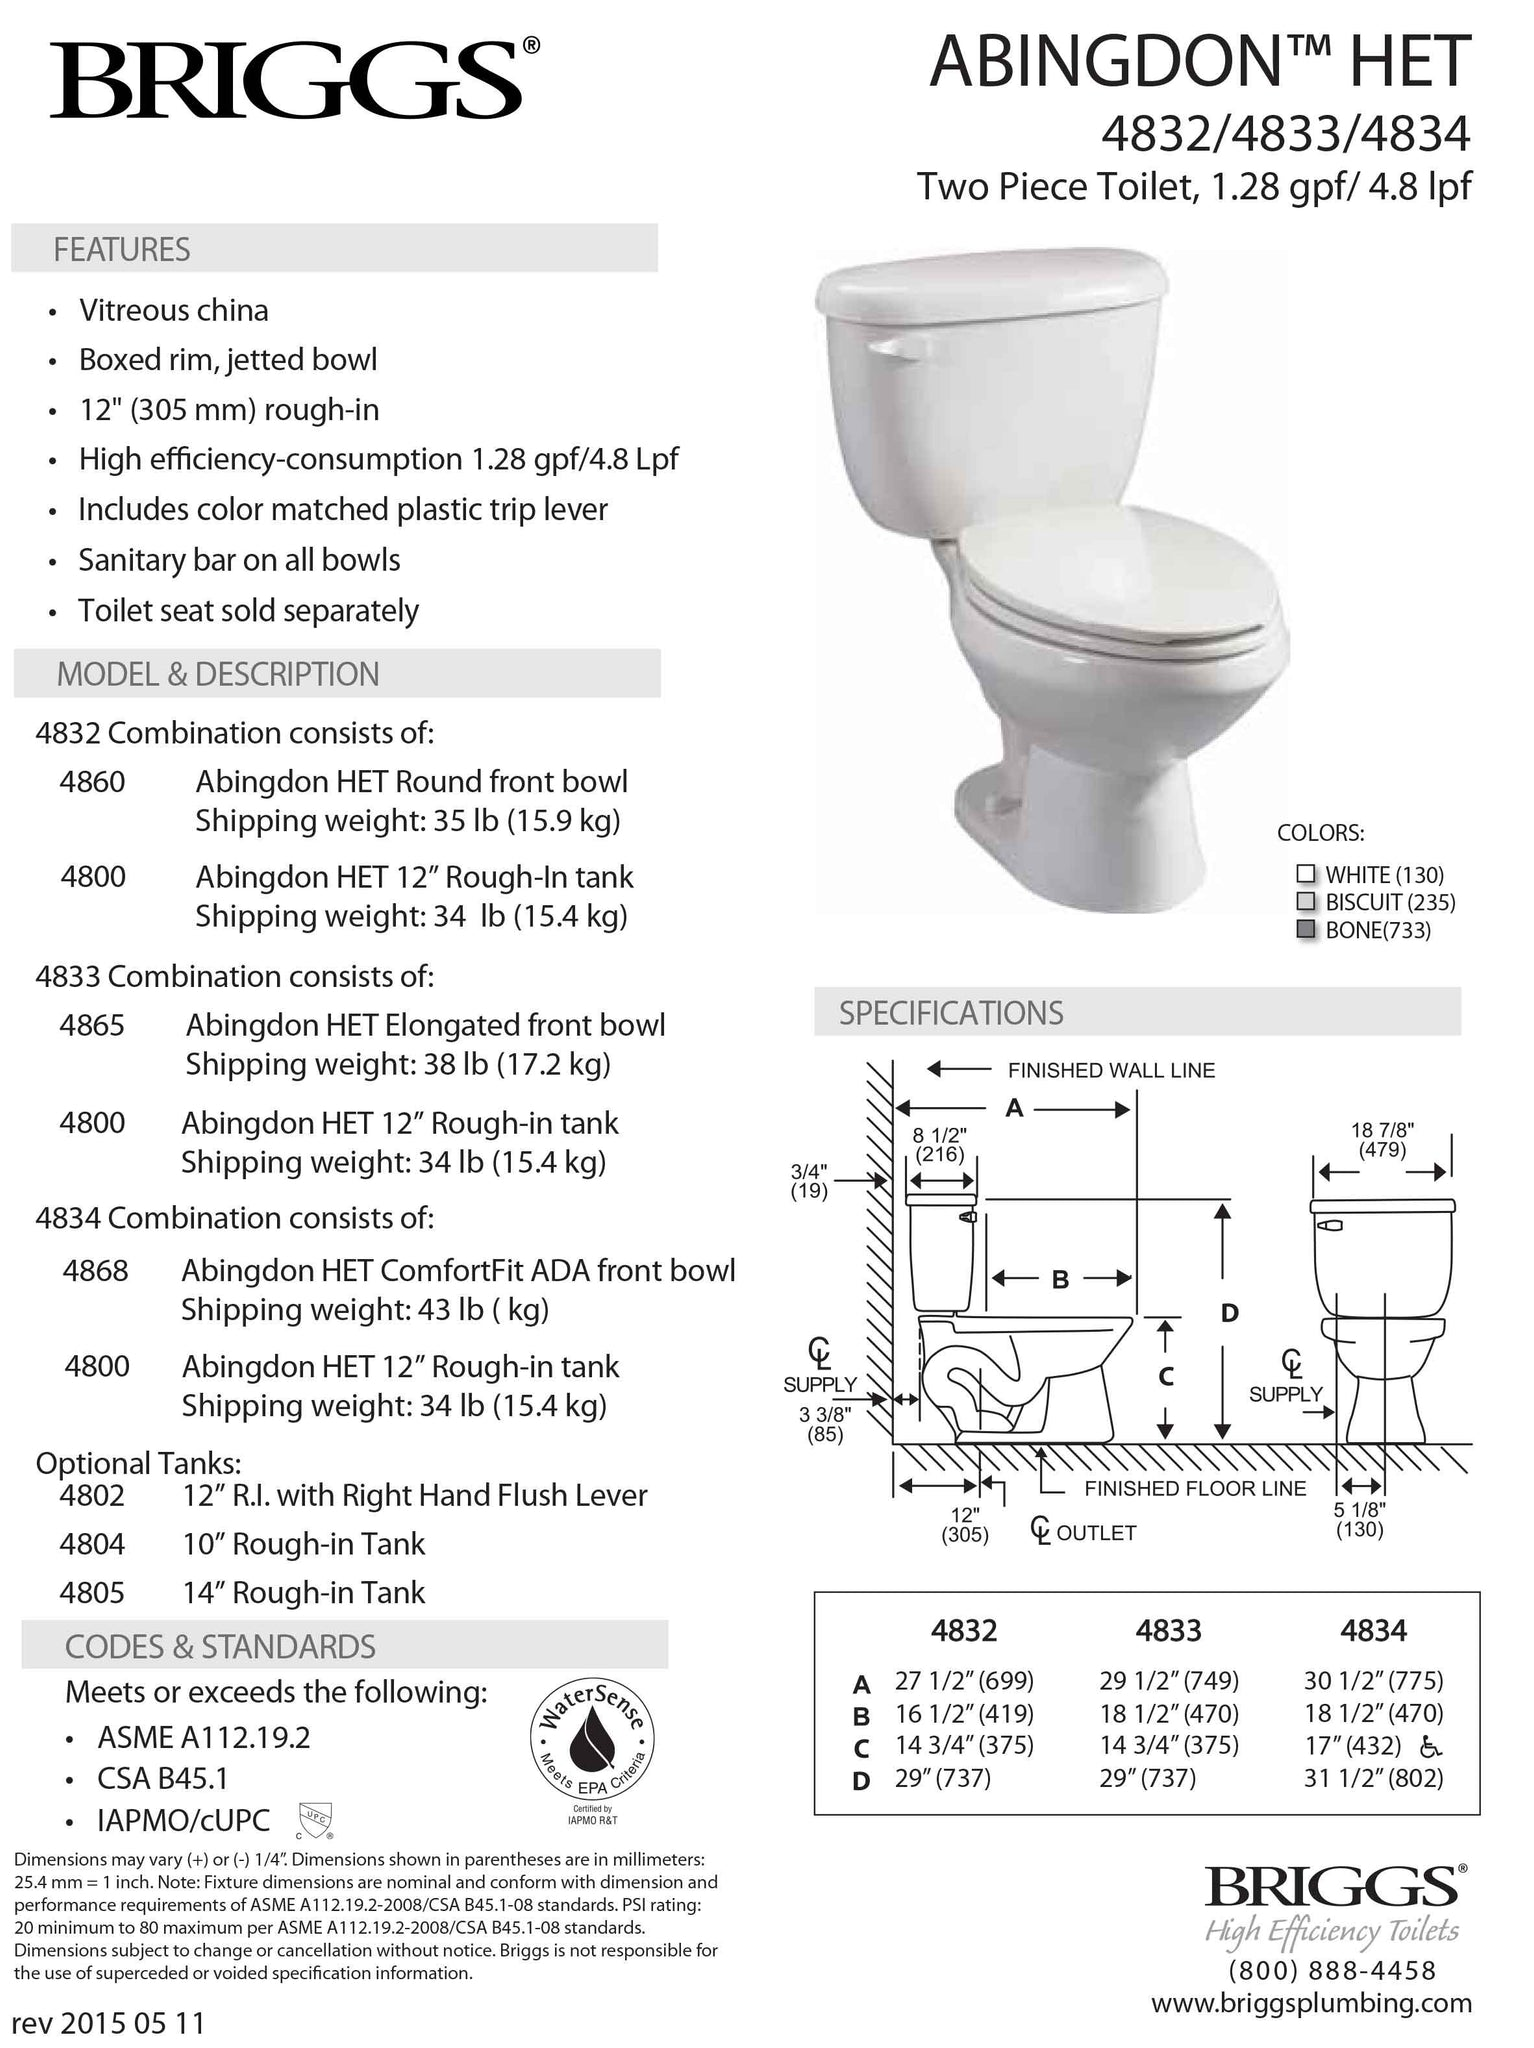 Abingdon Toilet HET (EL) 1.28 gpf submittal sheet